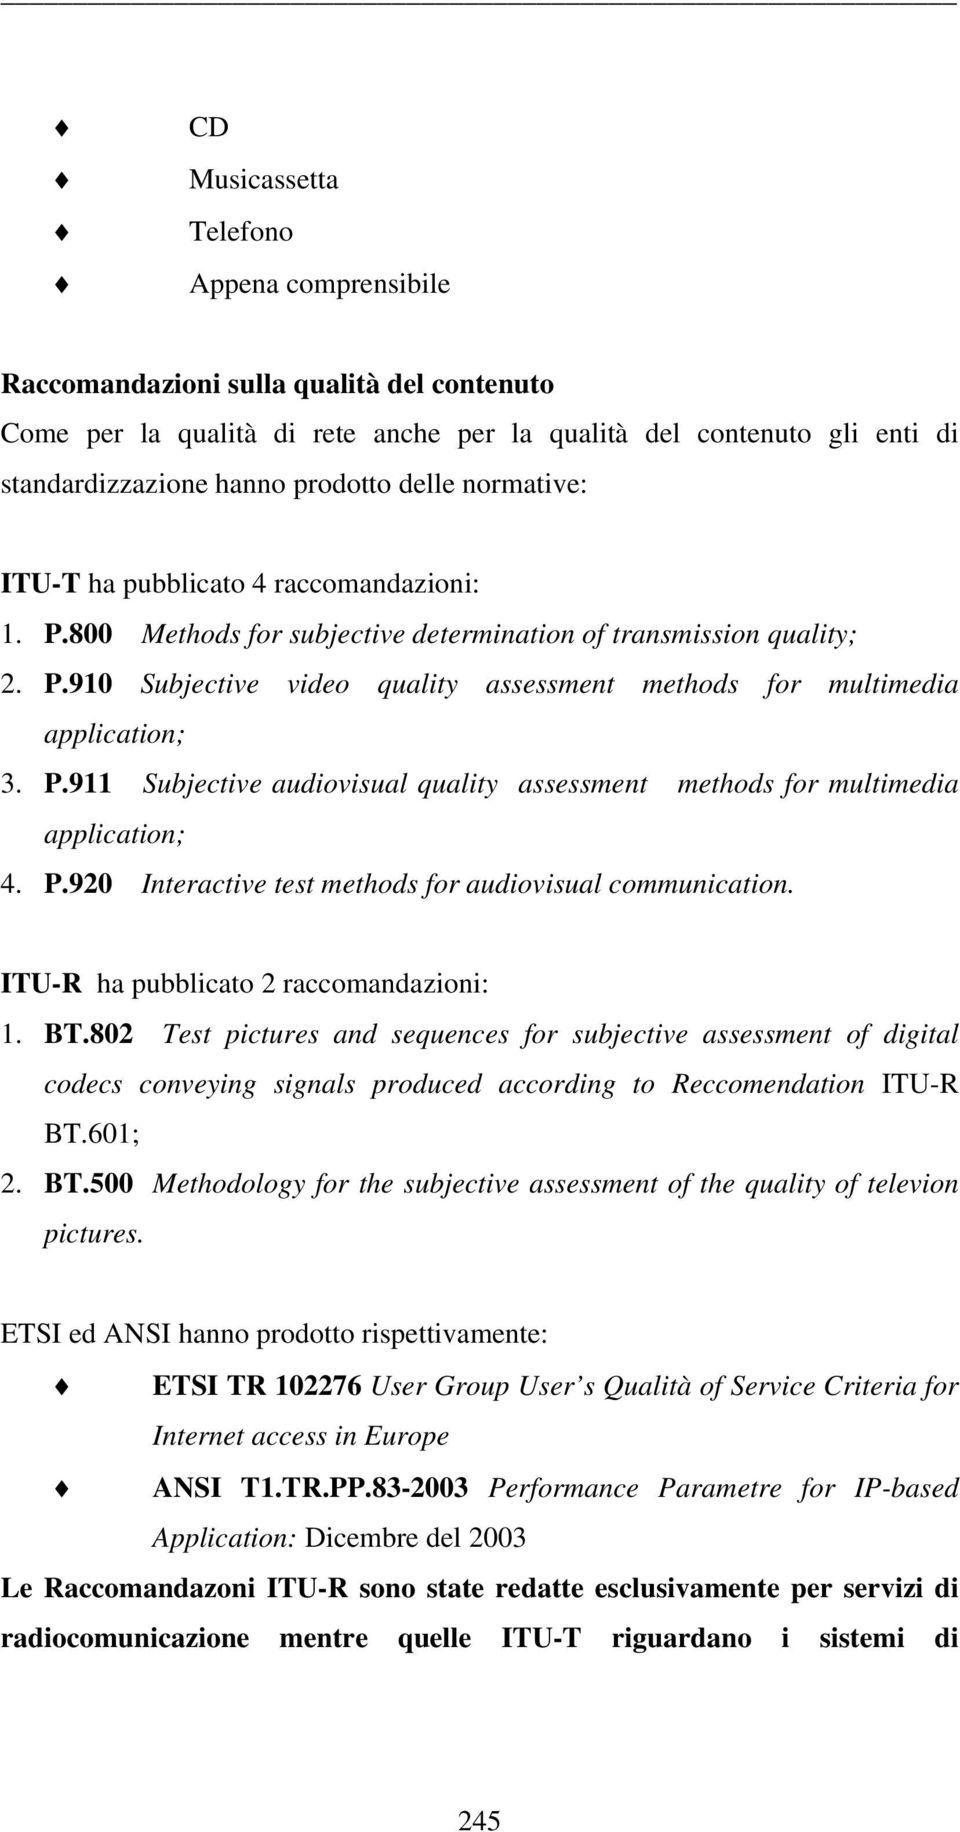 P.911 Subjective audiovisual quality assessment methods for multimedia application; 4. P.920 Interactive test methods for audiovisual communication. ITU-R ha pubblicato 2 raccomandazioni: 1. BT.